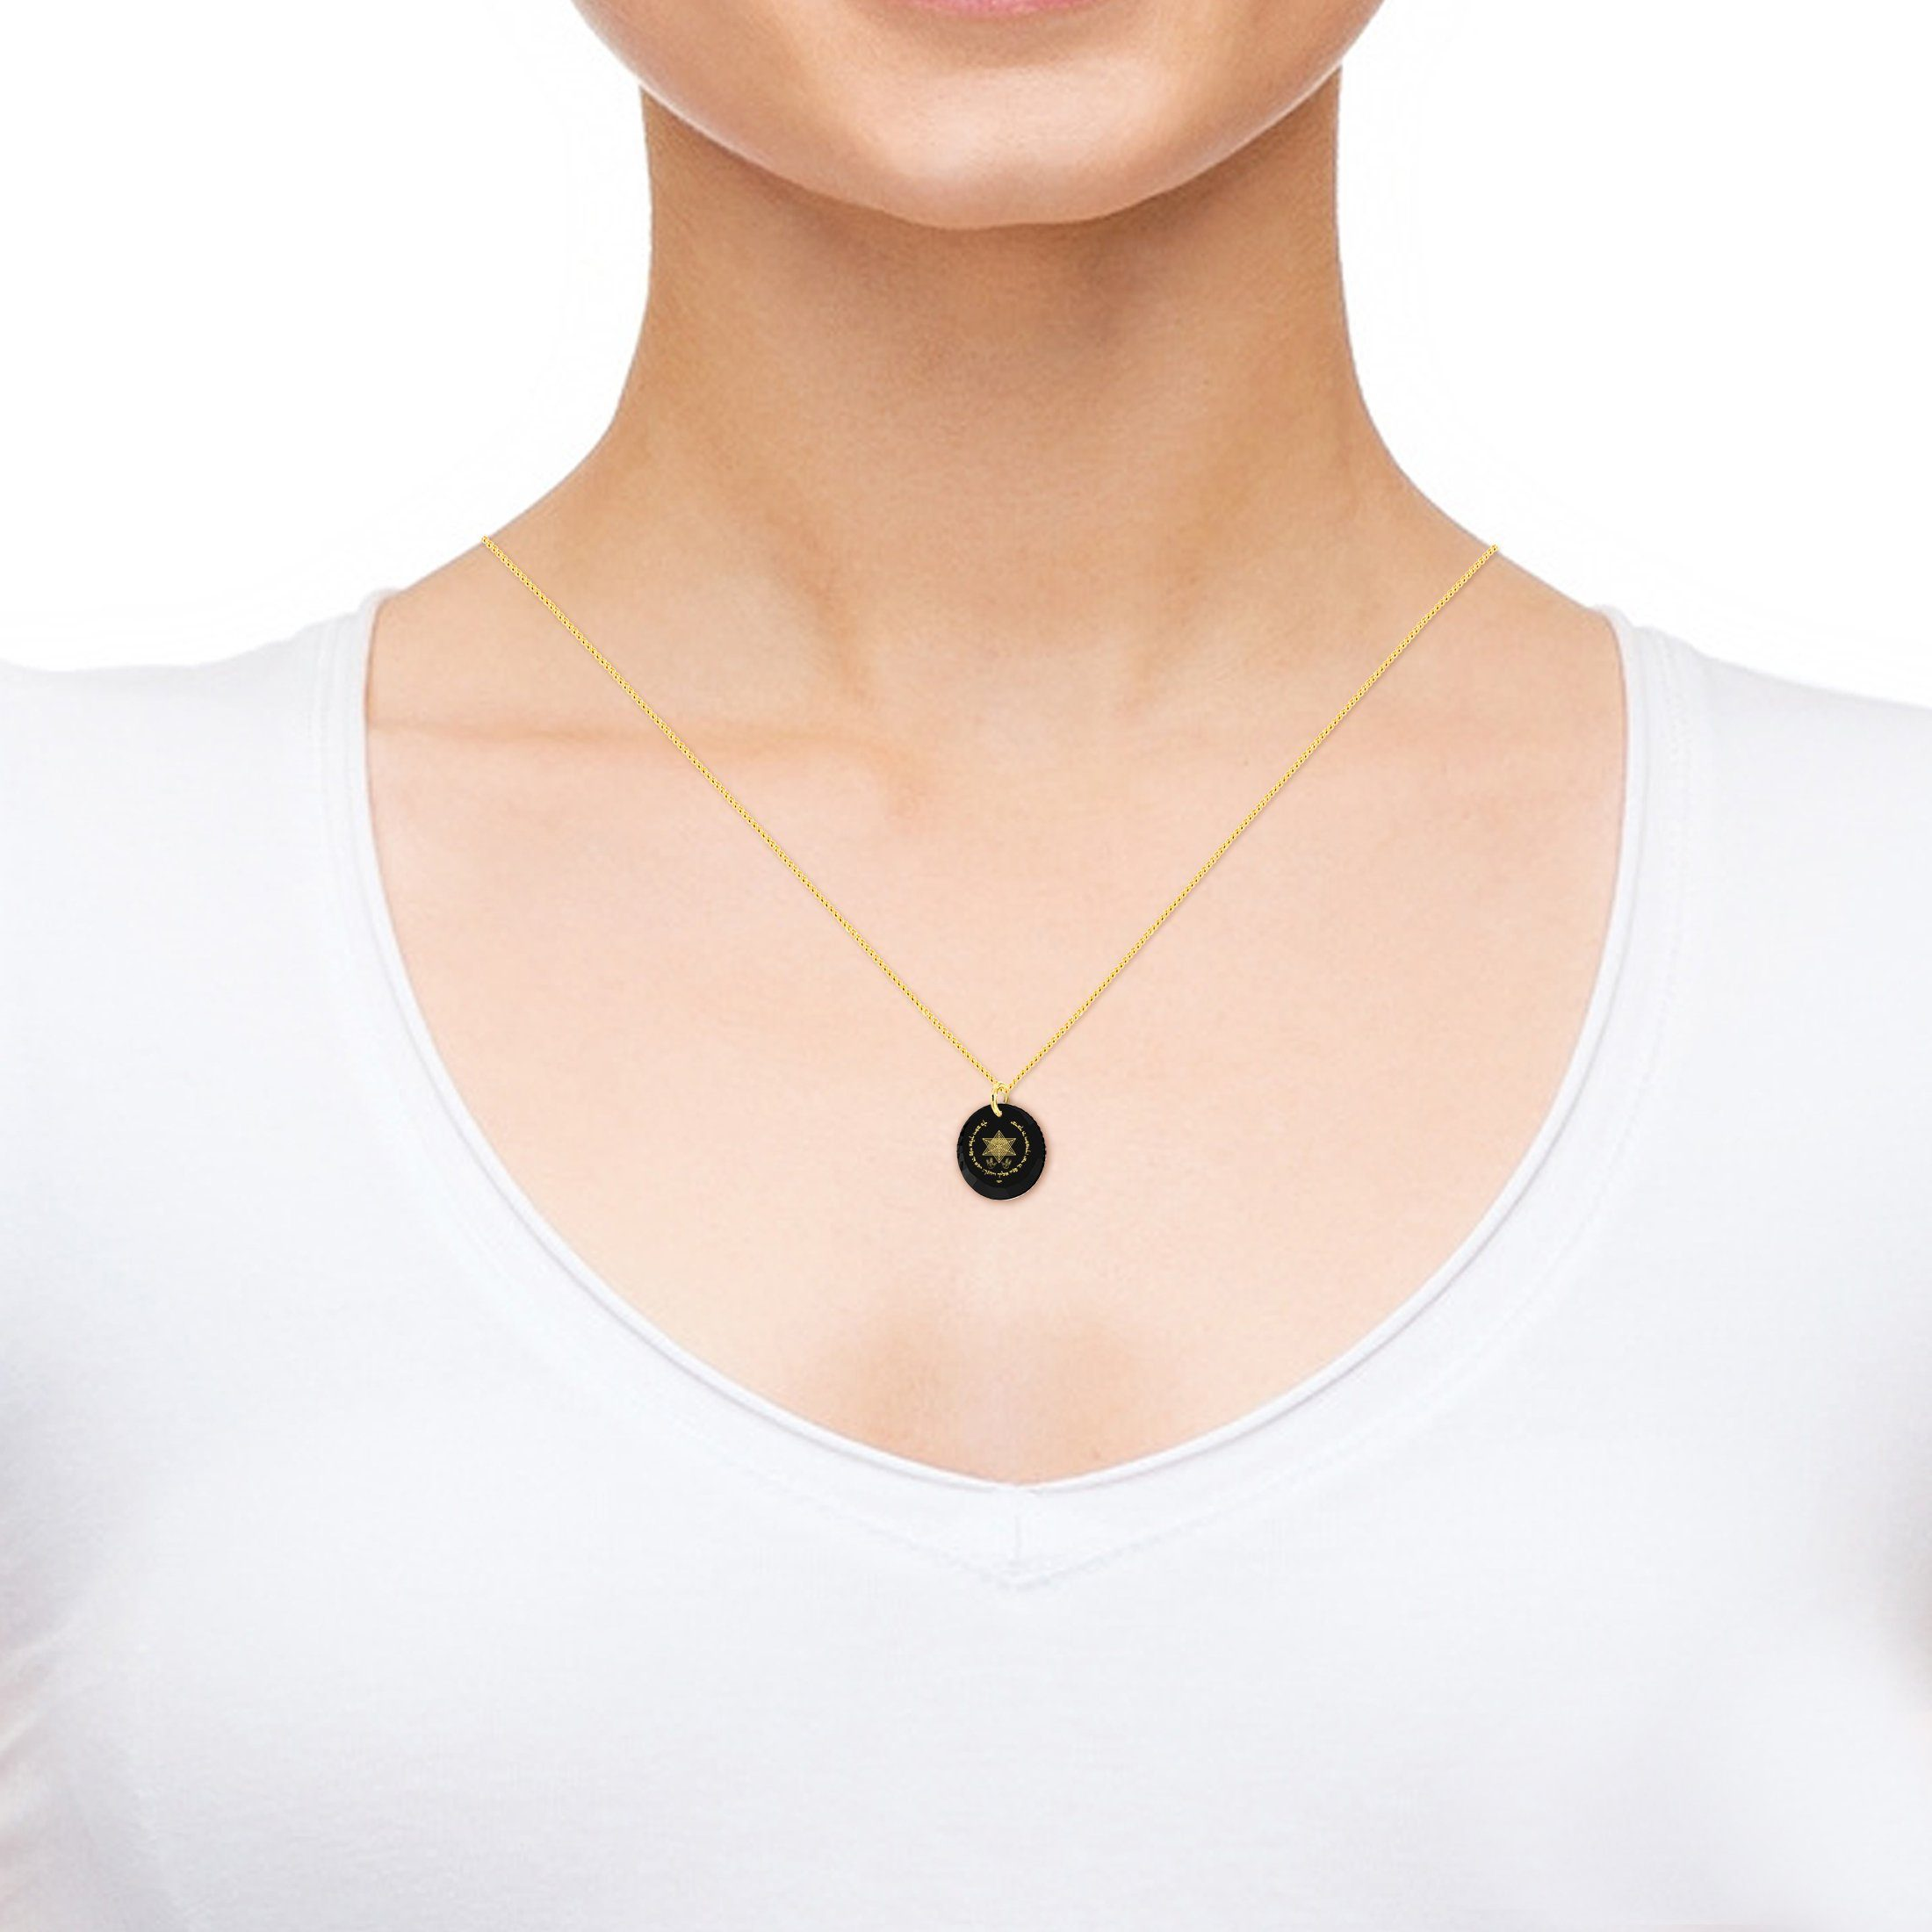 Jewish Necklace for Her, Nano Jewelry